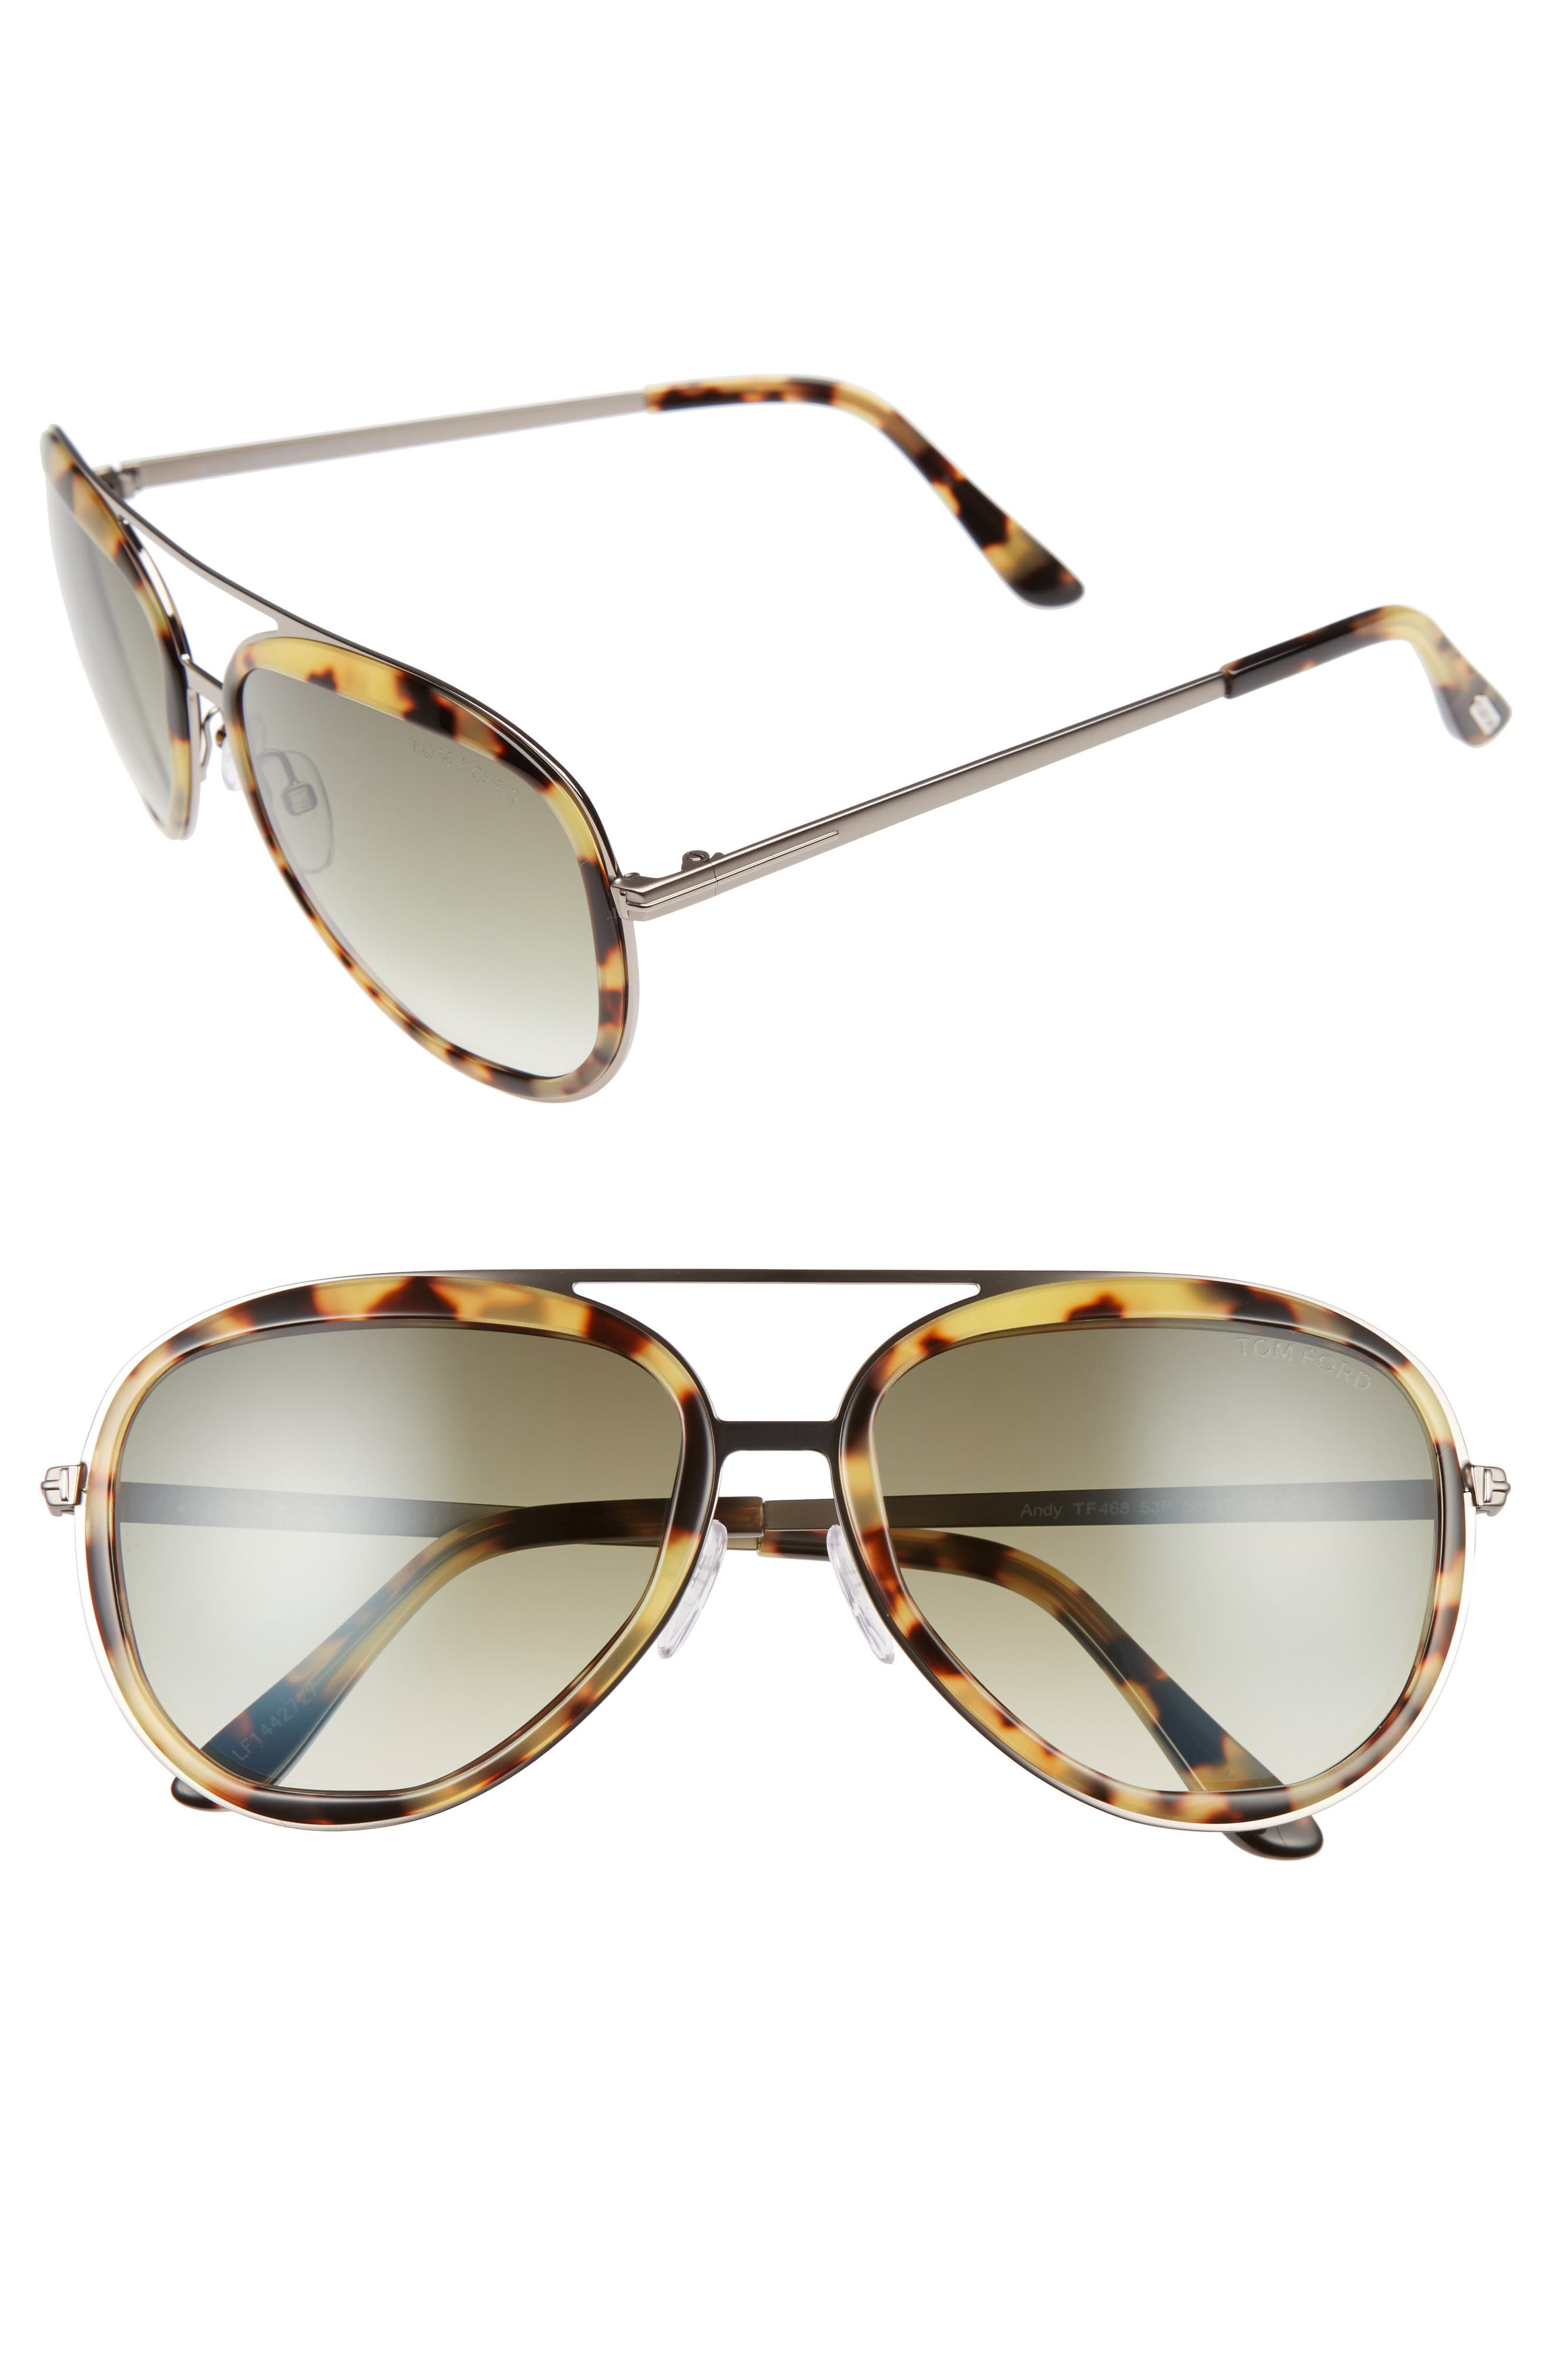 Main Image - Tom Ford Andy 58mm Aviator Sunglasses